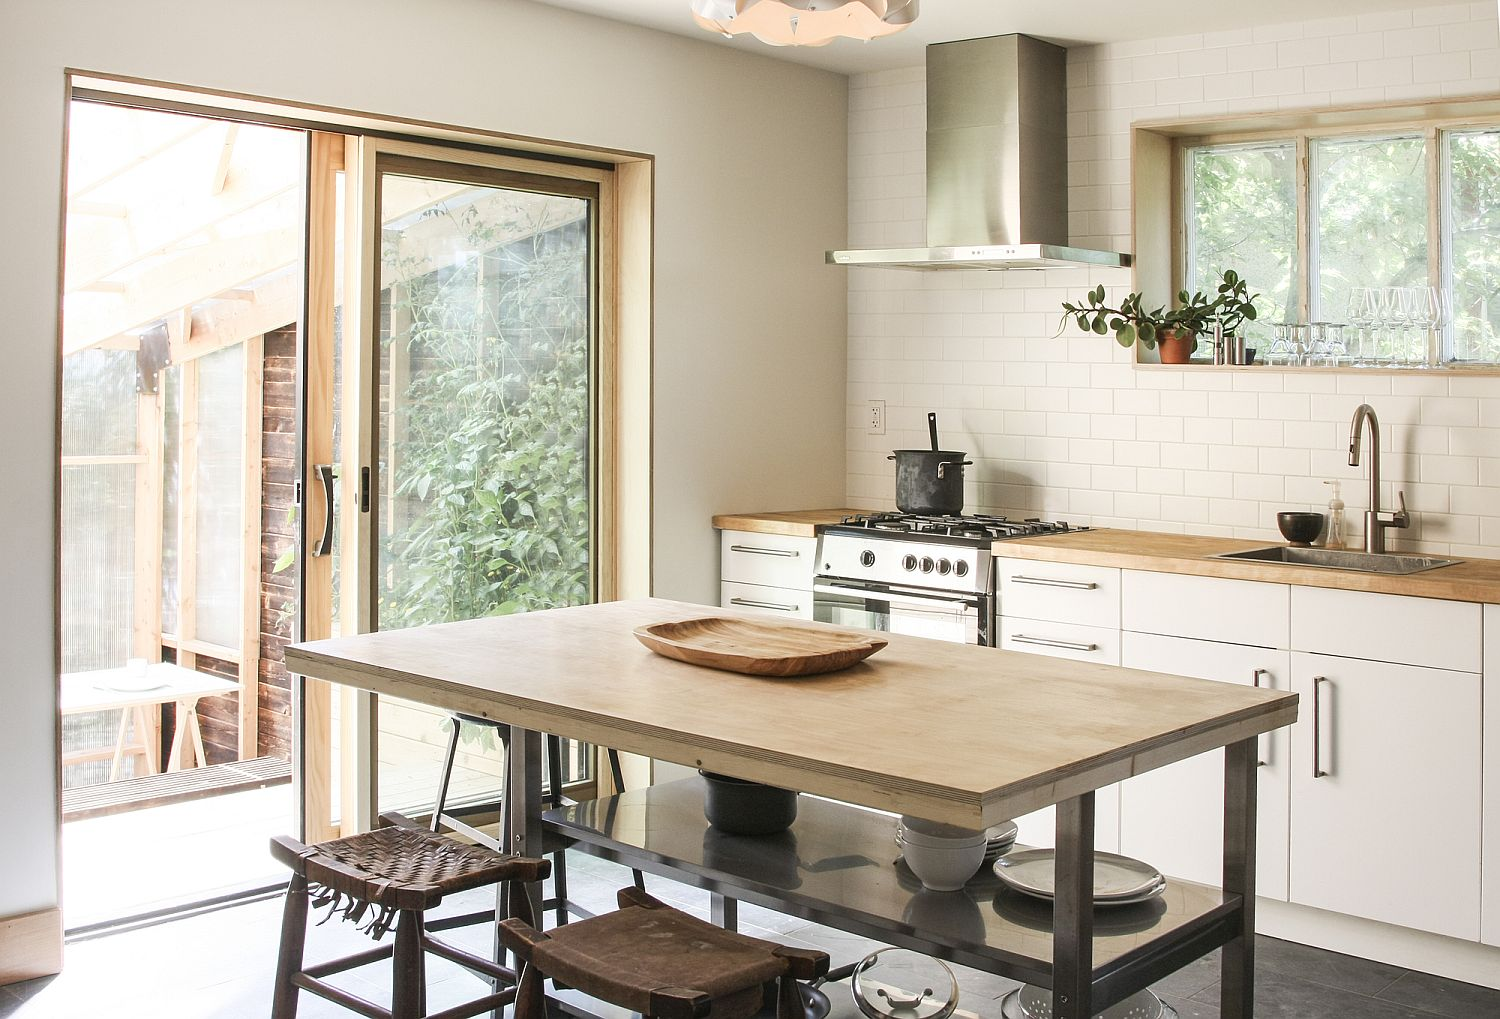 Light-filled kitchen with a casual central island and breakfast zone